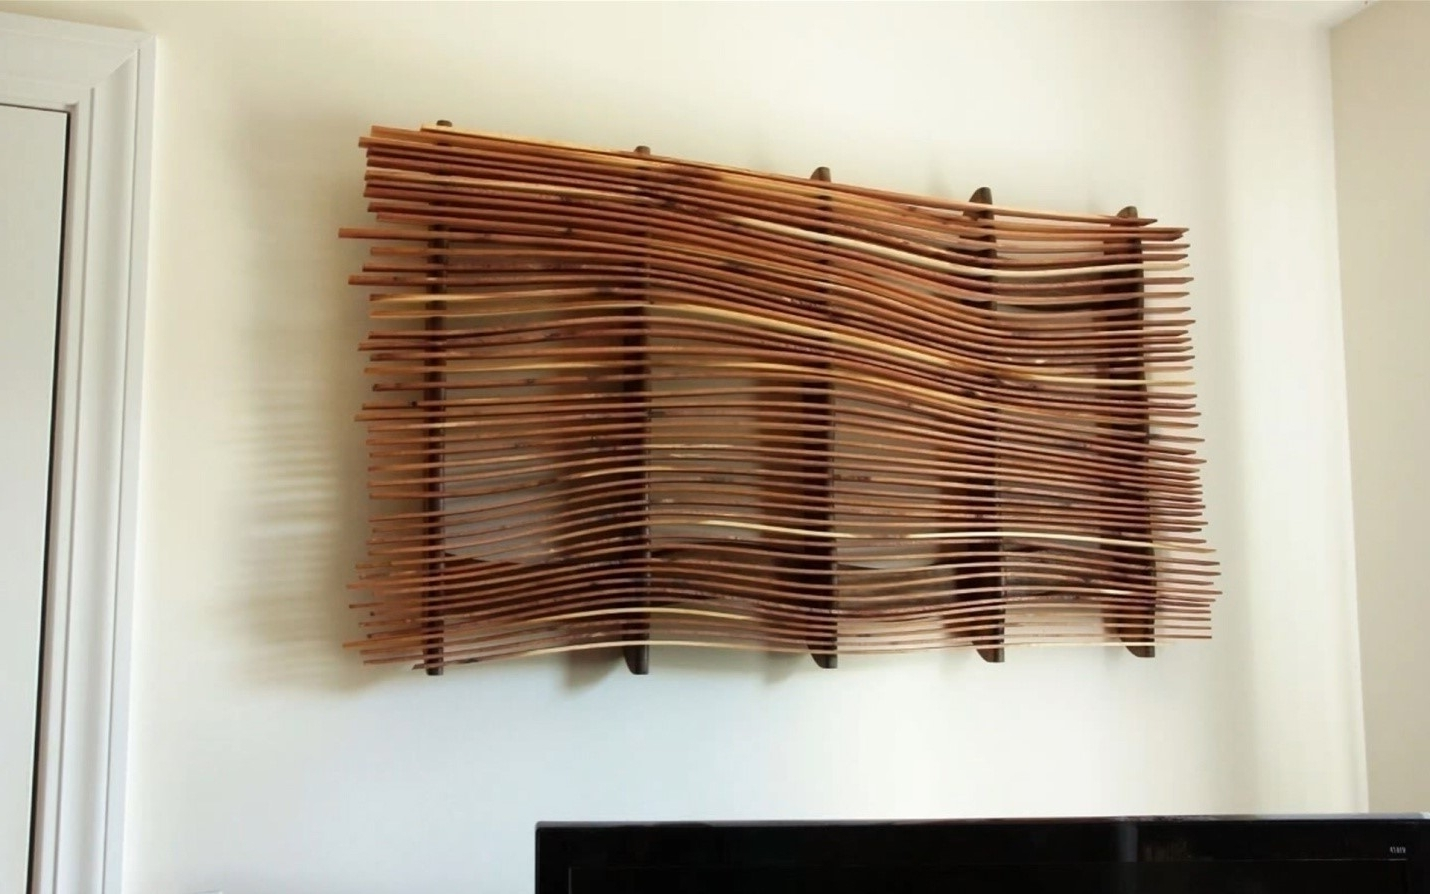 Well Known Wood Wall Art With Regard To How To Make Wall Art From Scrap Wood (View 7 of 15)